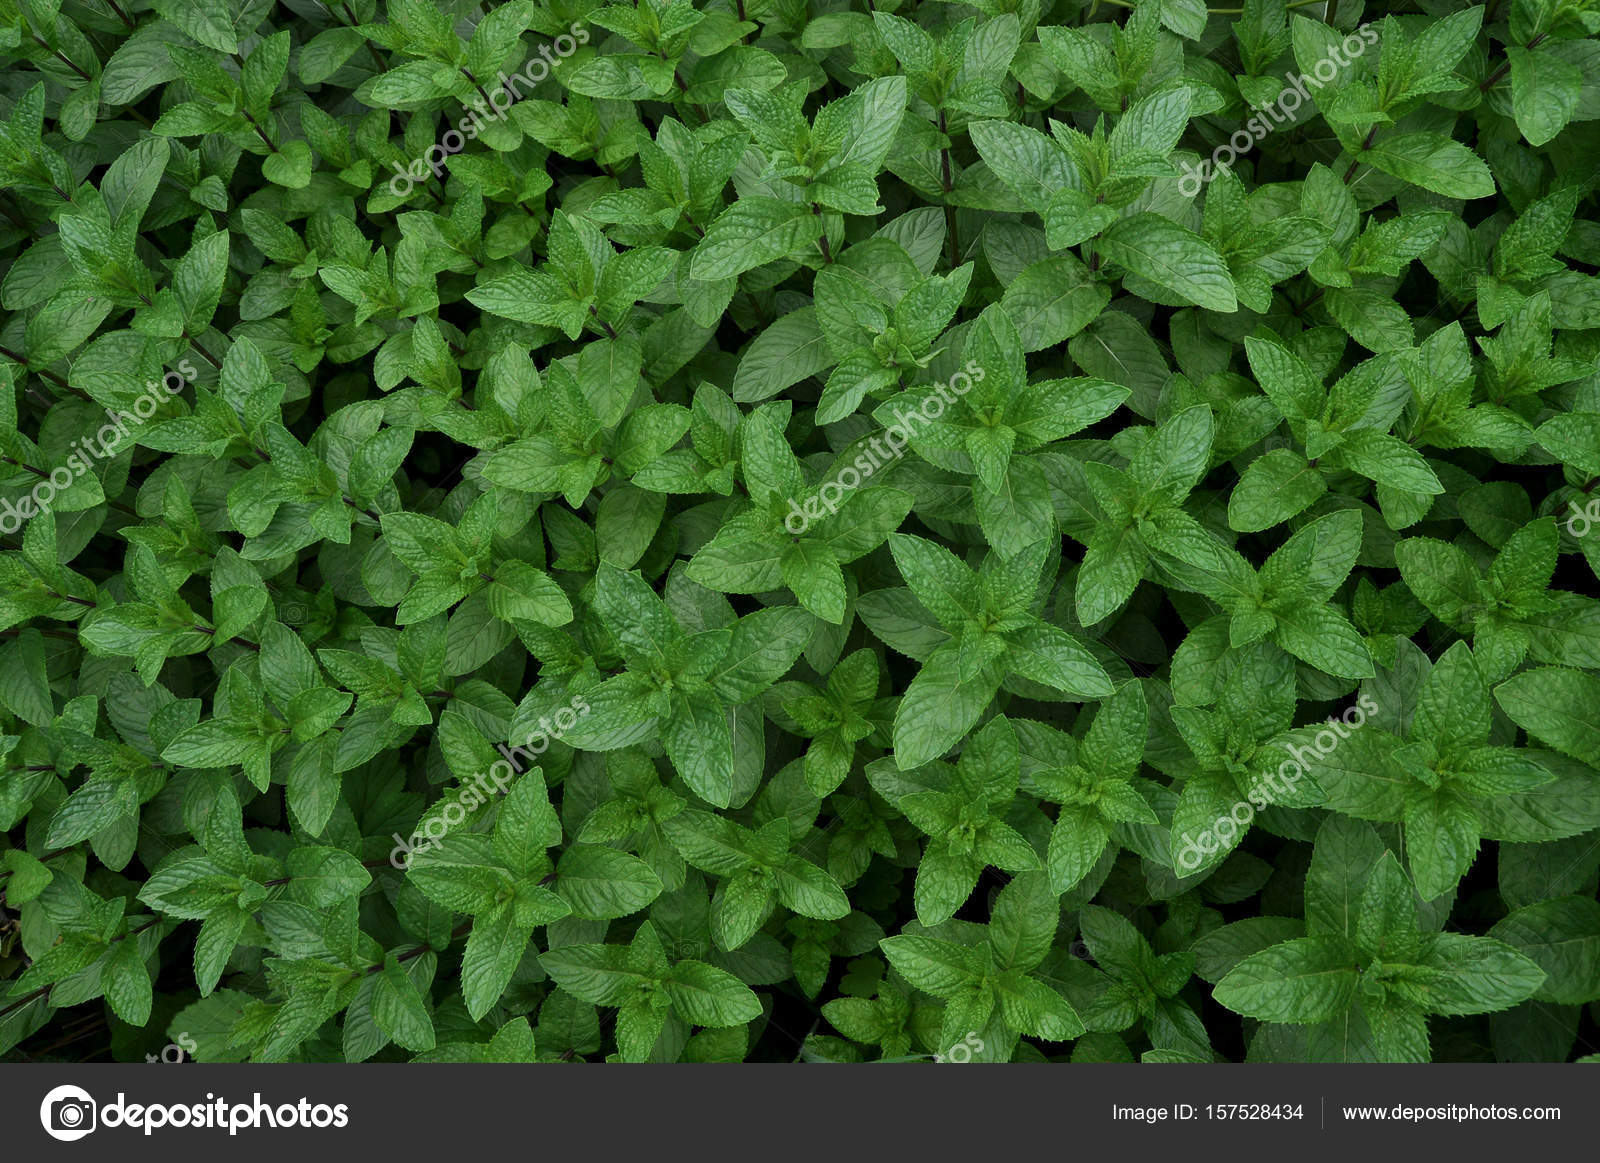 Mint in the garden. — Stock Photo © seans4546 #157528434